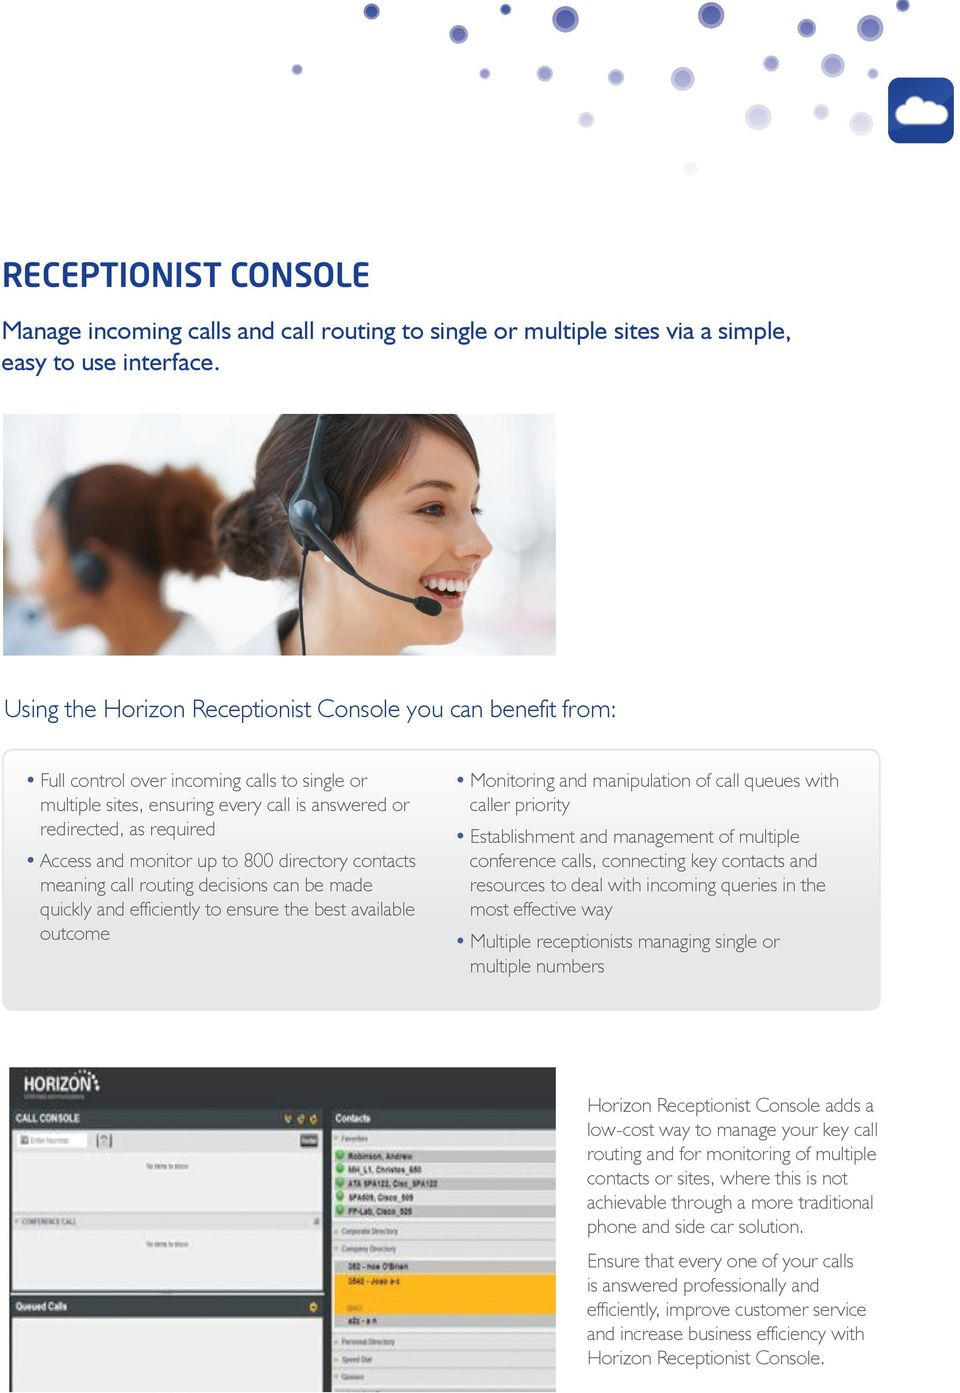 monitor up to 800 directory contacts meaning call routing decisions can be made quickly and efficiently to ensure the best available outcome Monitoring and manipulation of call queues with caller